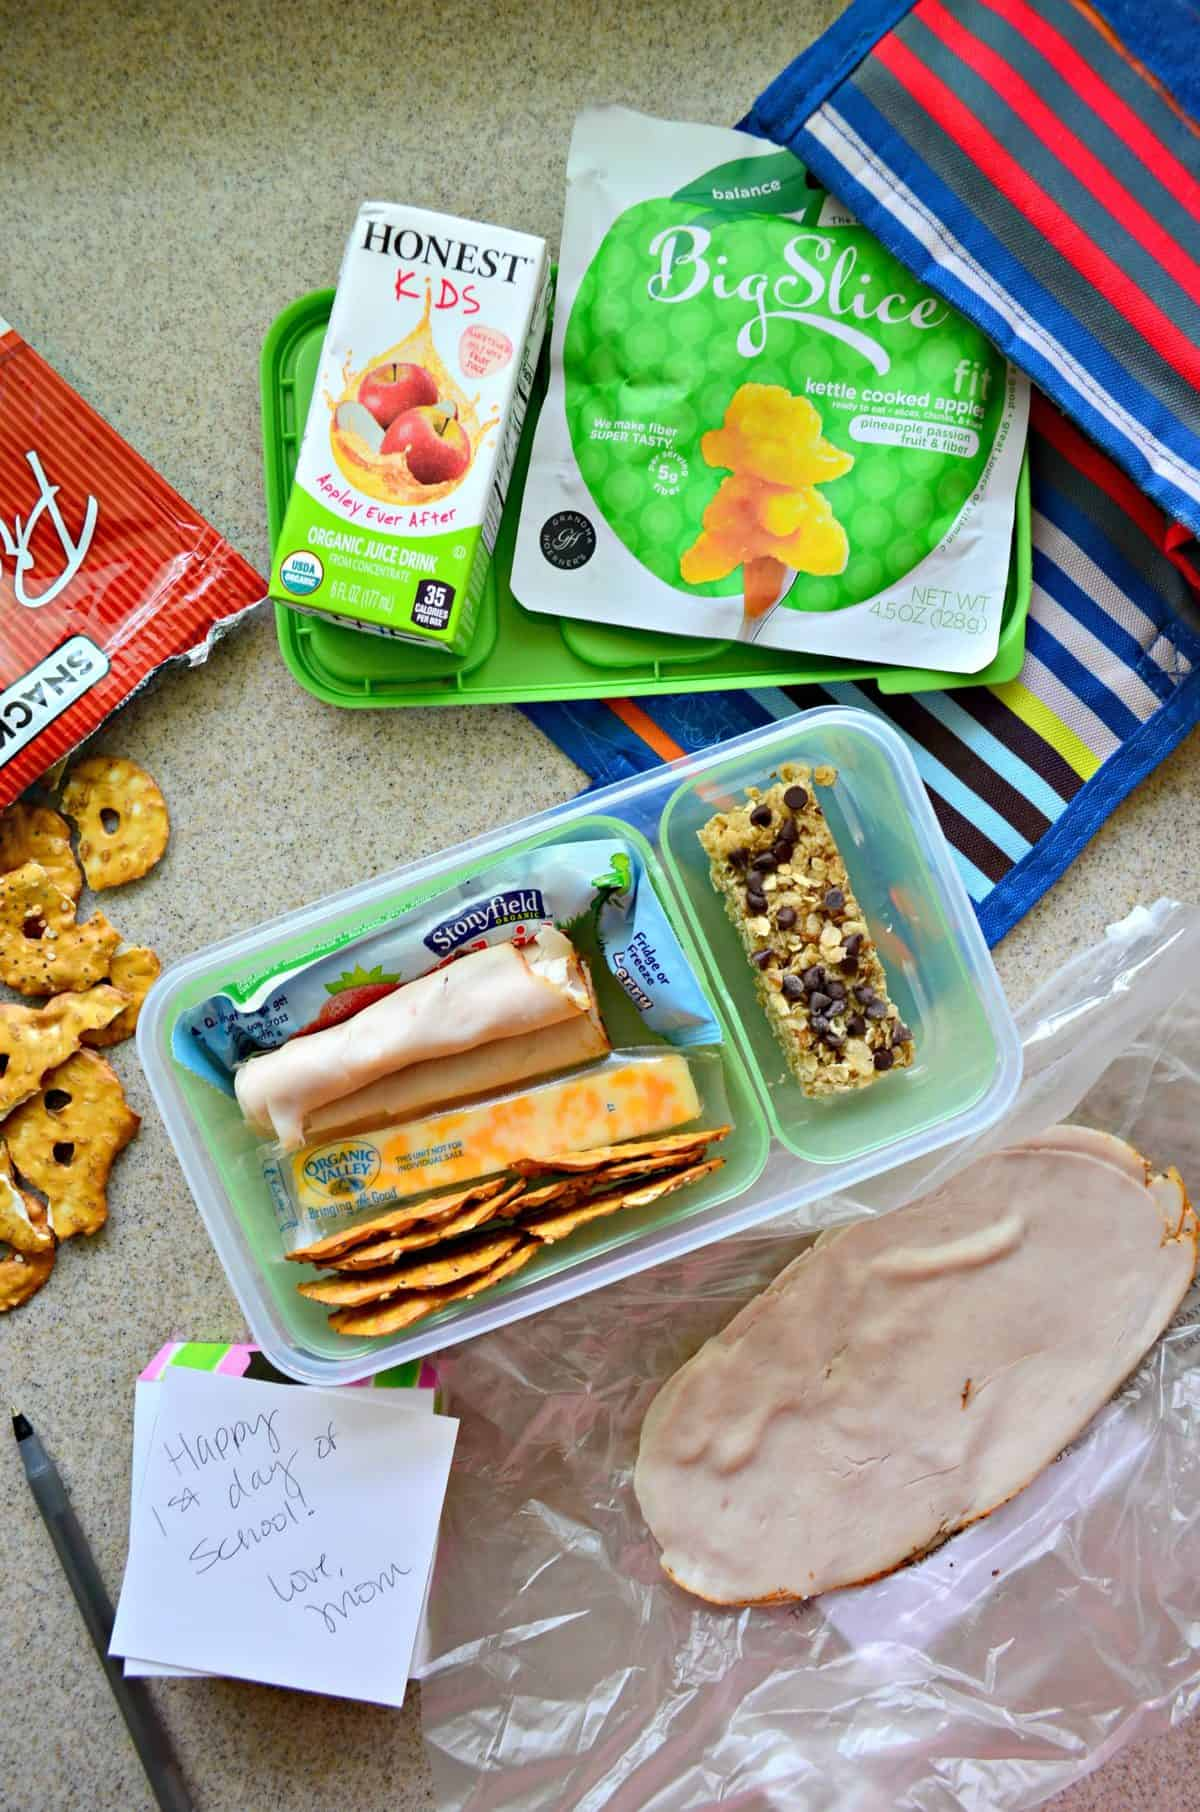 Pinterest cover page with open lunchbox container filled with kid's lunch items.